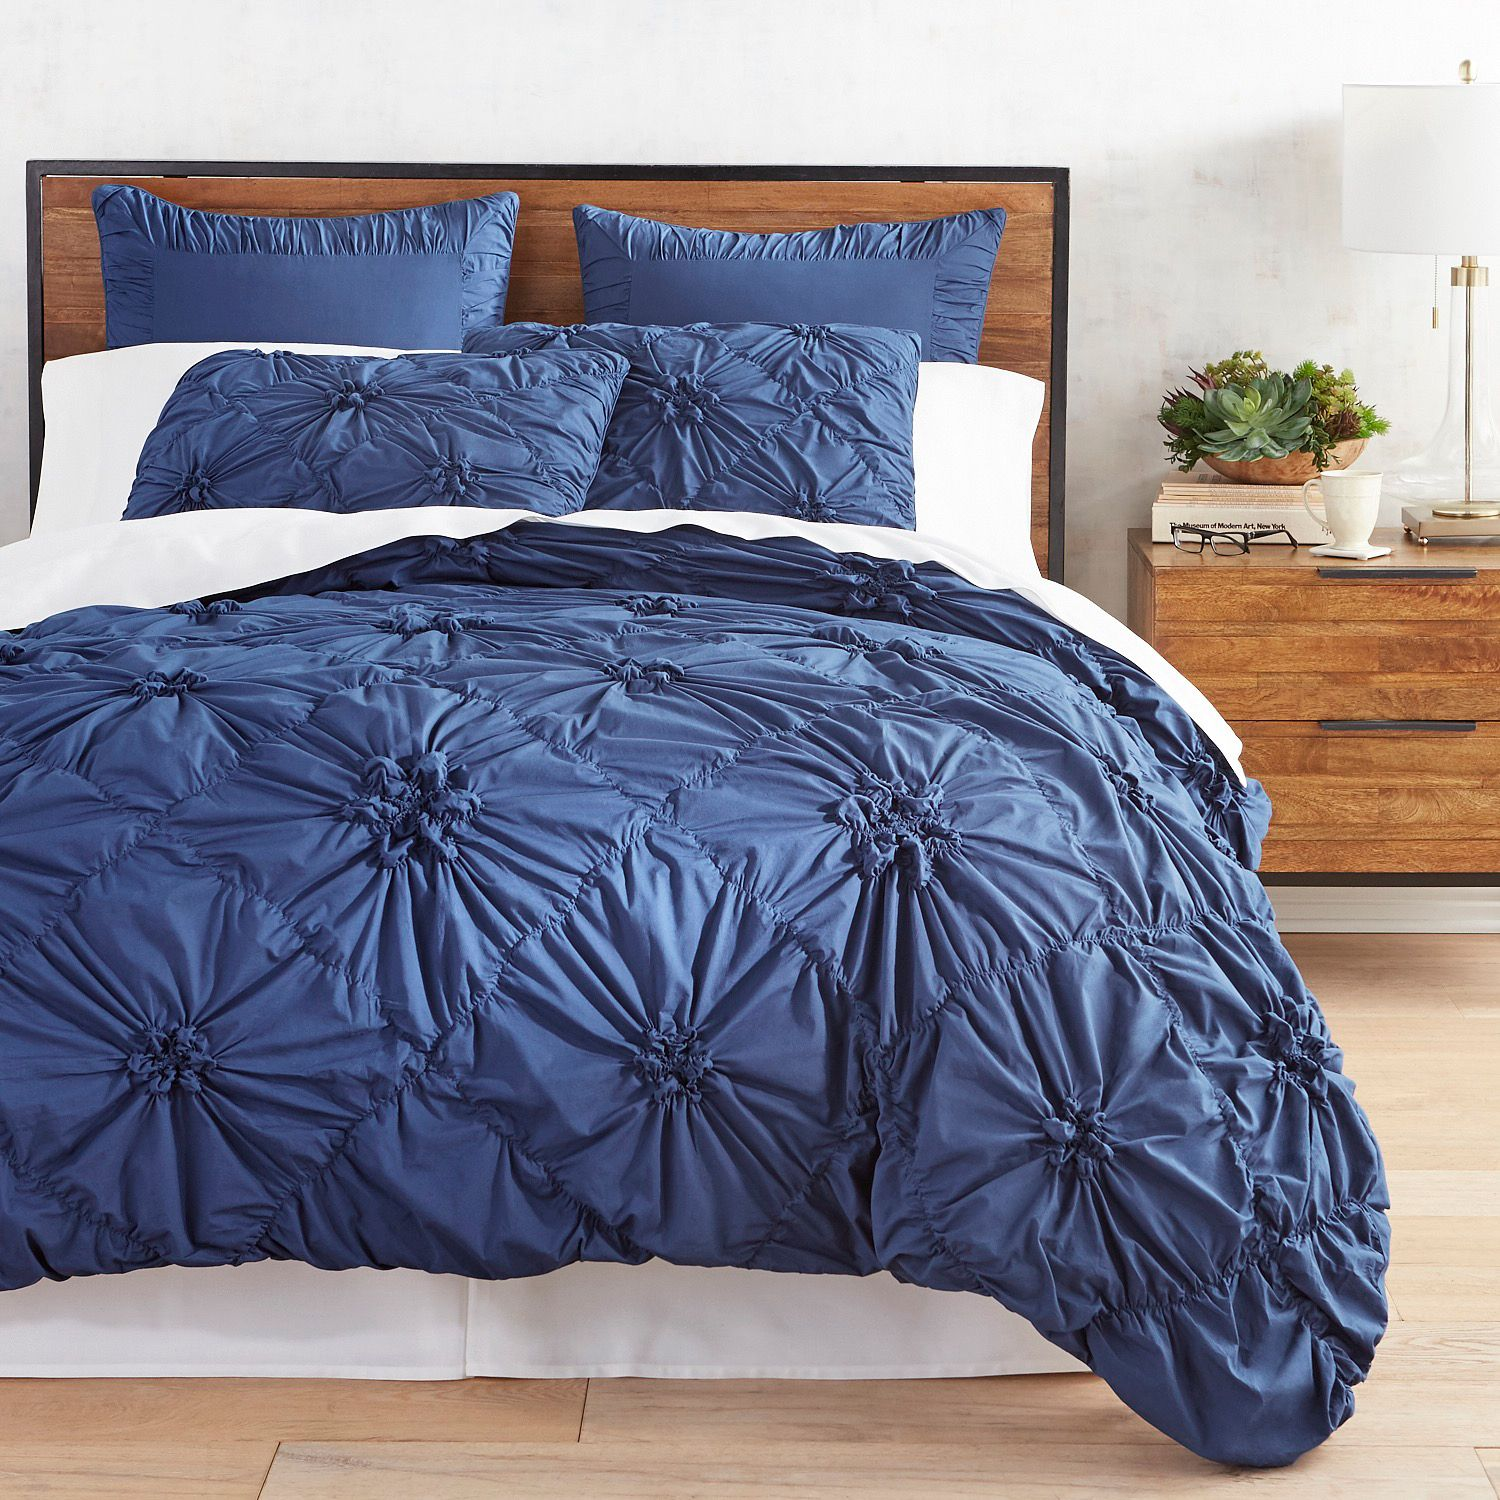 modern elegant bedroom decor in navy blue and warm wood accents